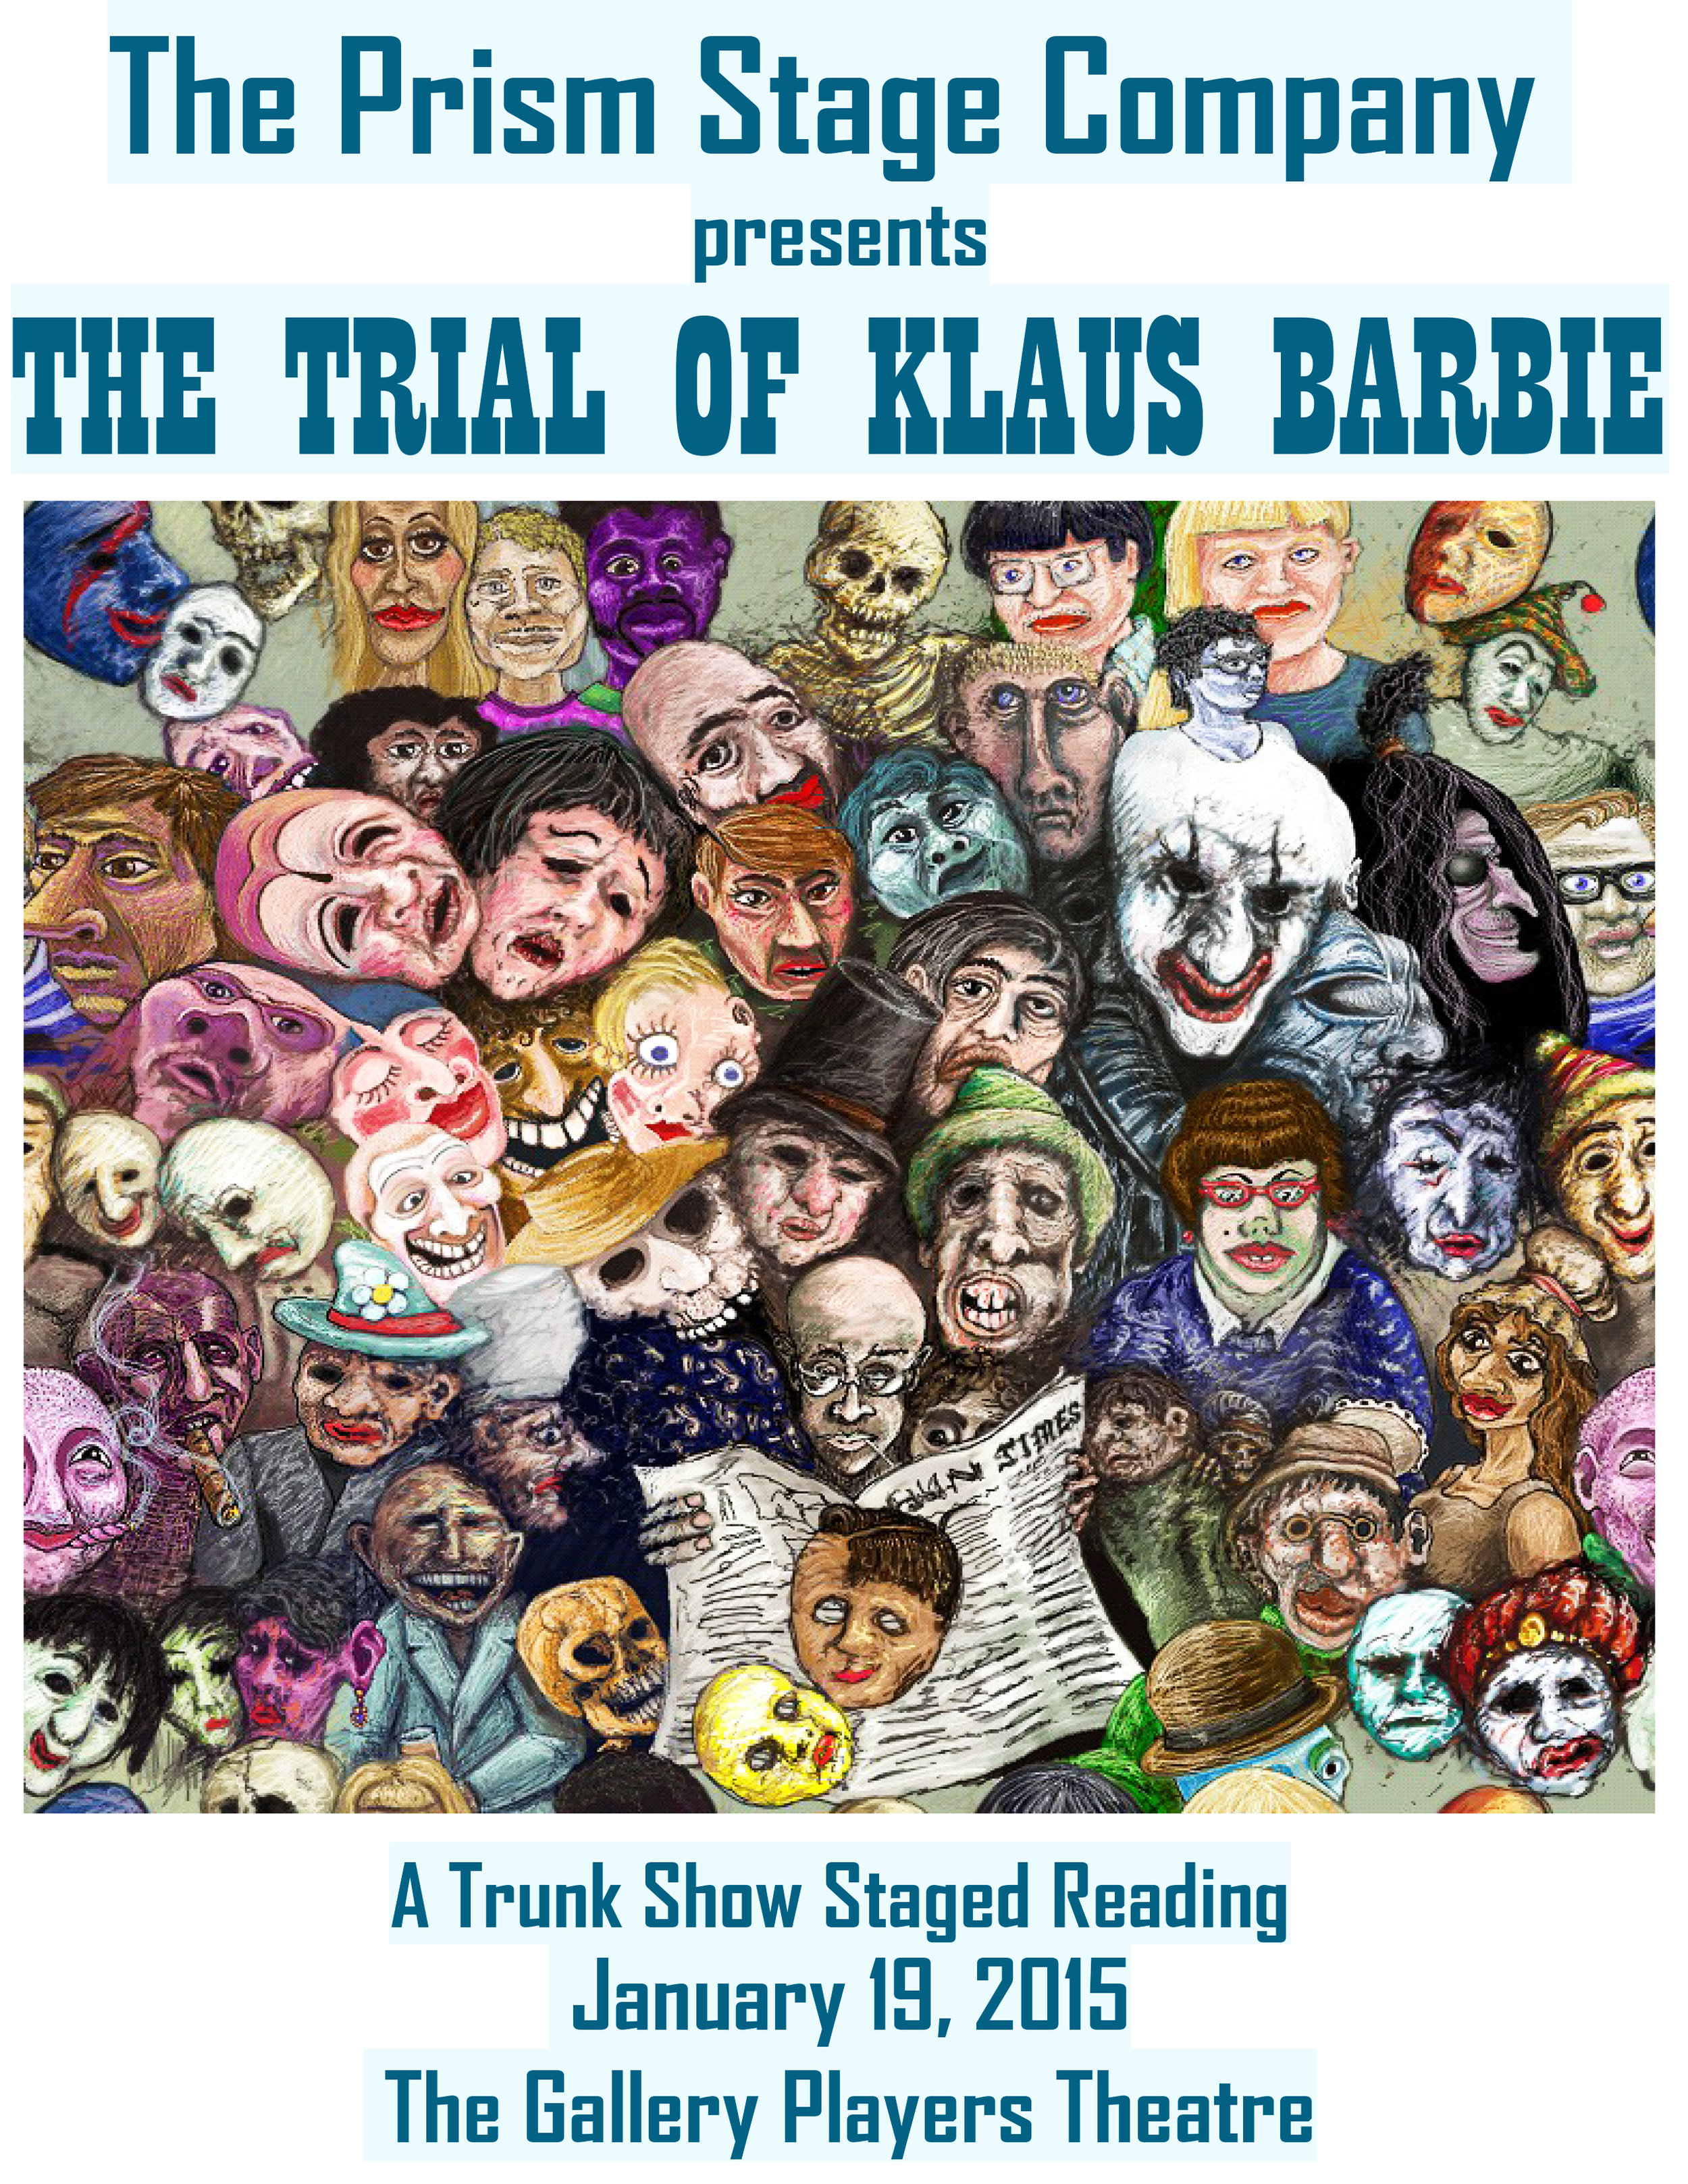 The Trial of Klaus Barbie